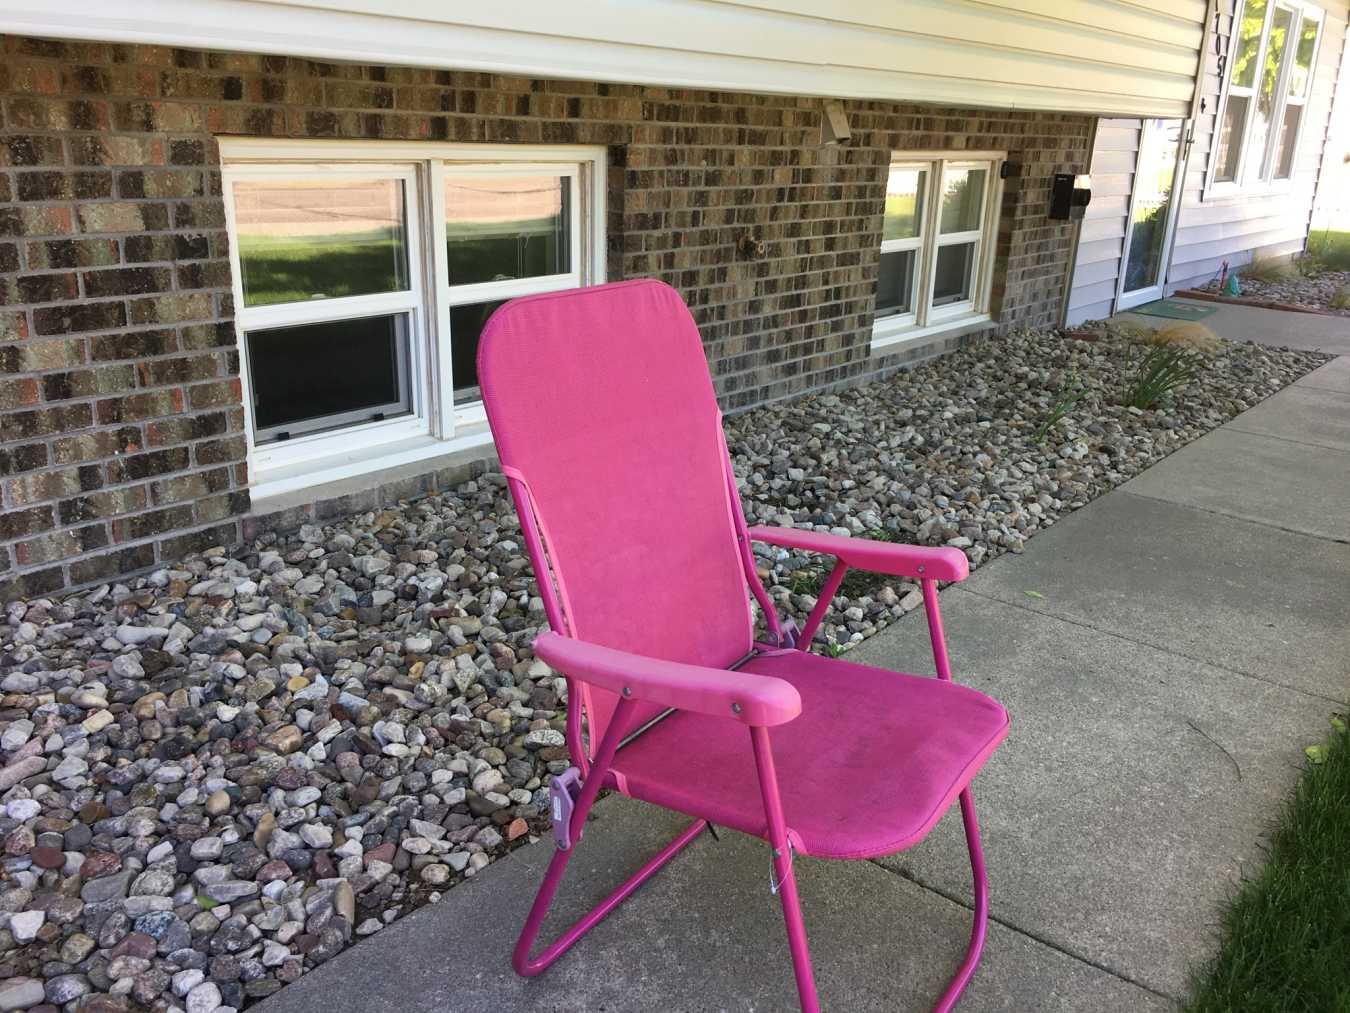 Pull up a Lawn Chair, Meet Your Neighbors